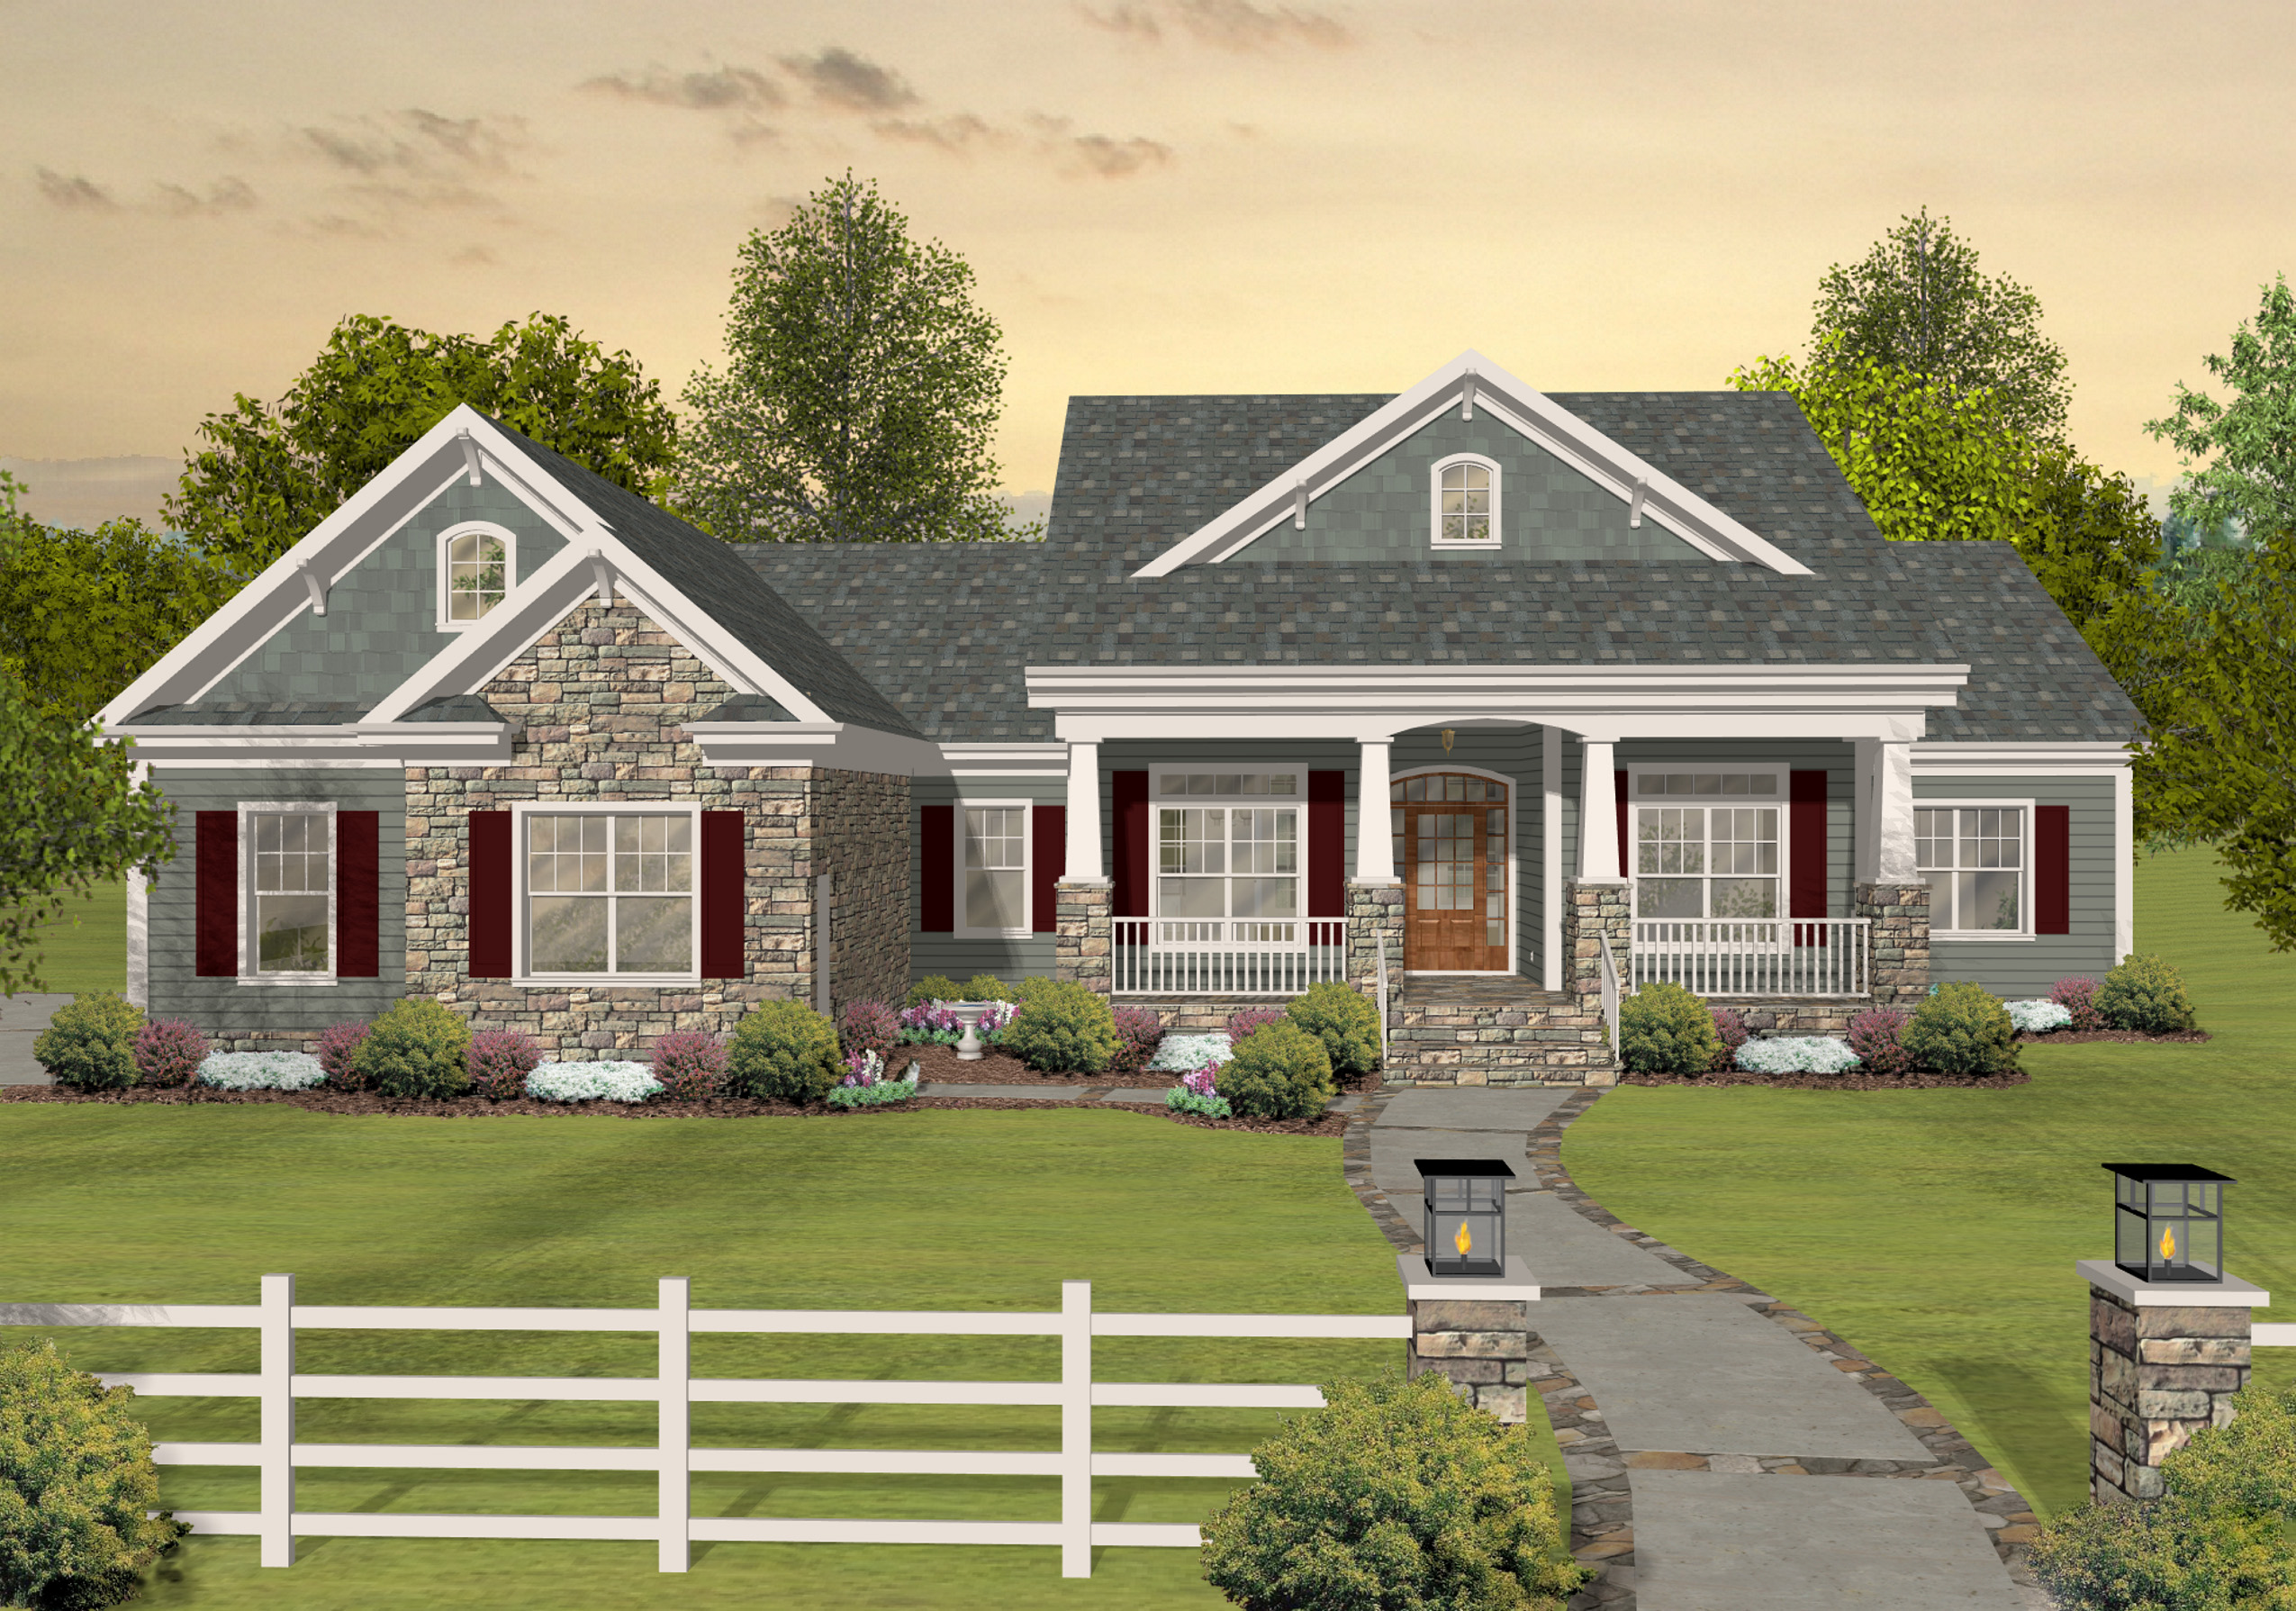 Flexible ranch with loaded optional lower level 20078ga architectural designs house plans